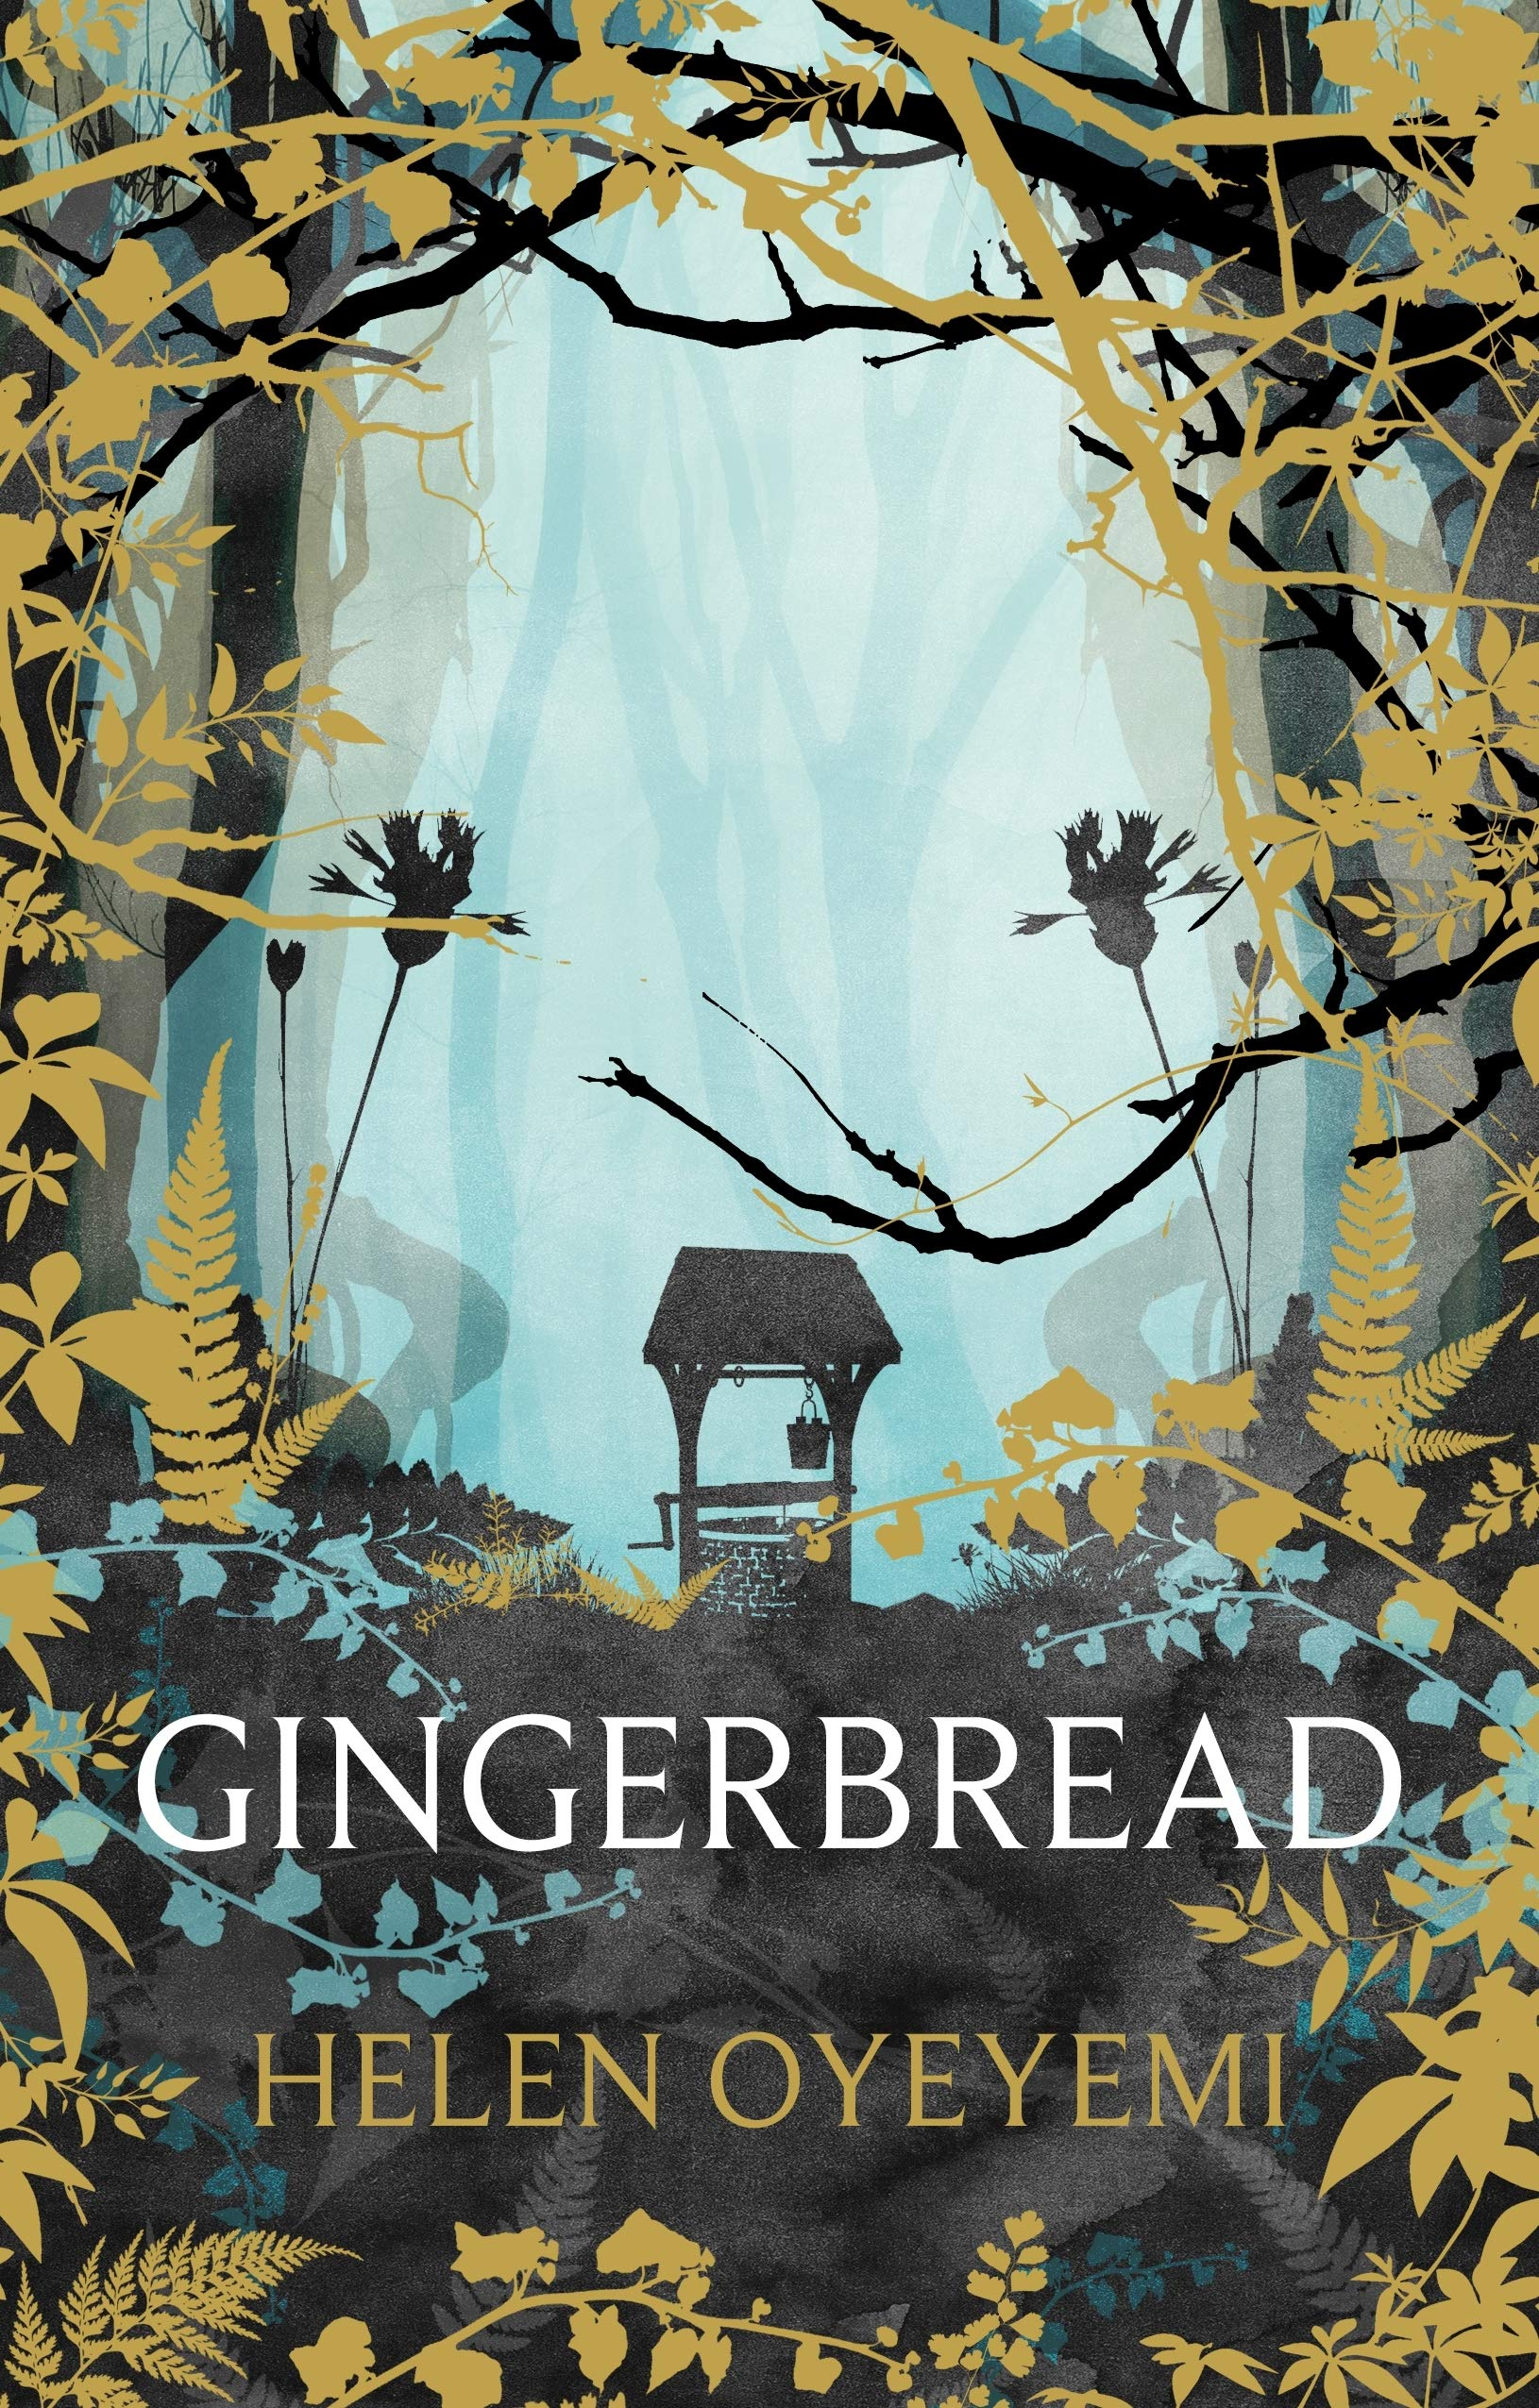 Gingerbread: Amazon.co.uk: Oyeyemi, Helen: 9781447299417: Books